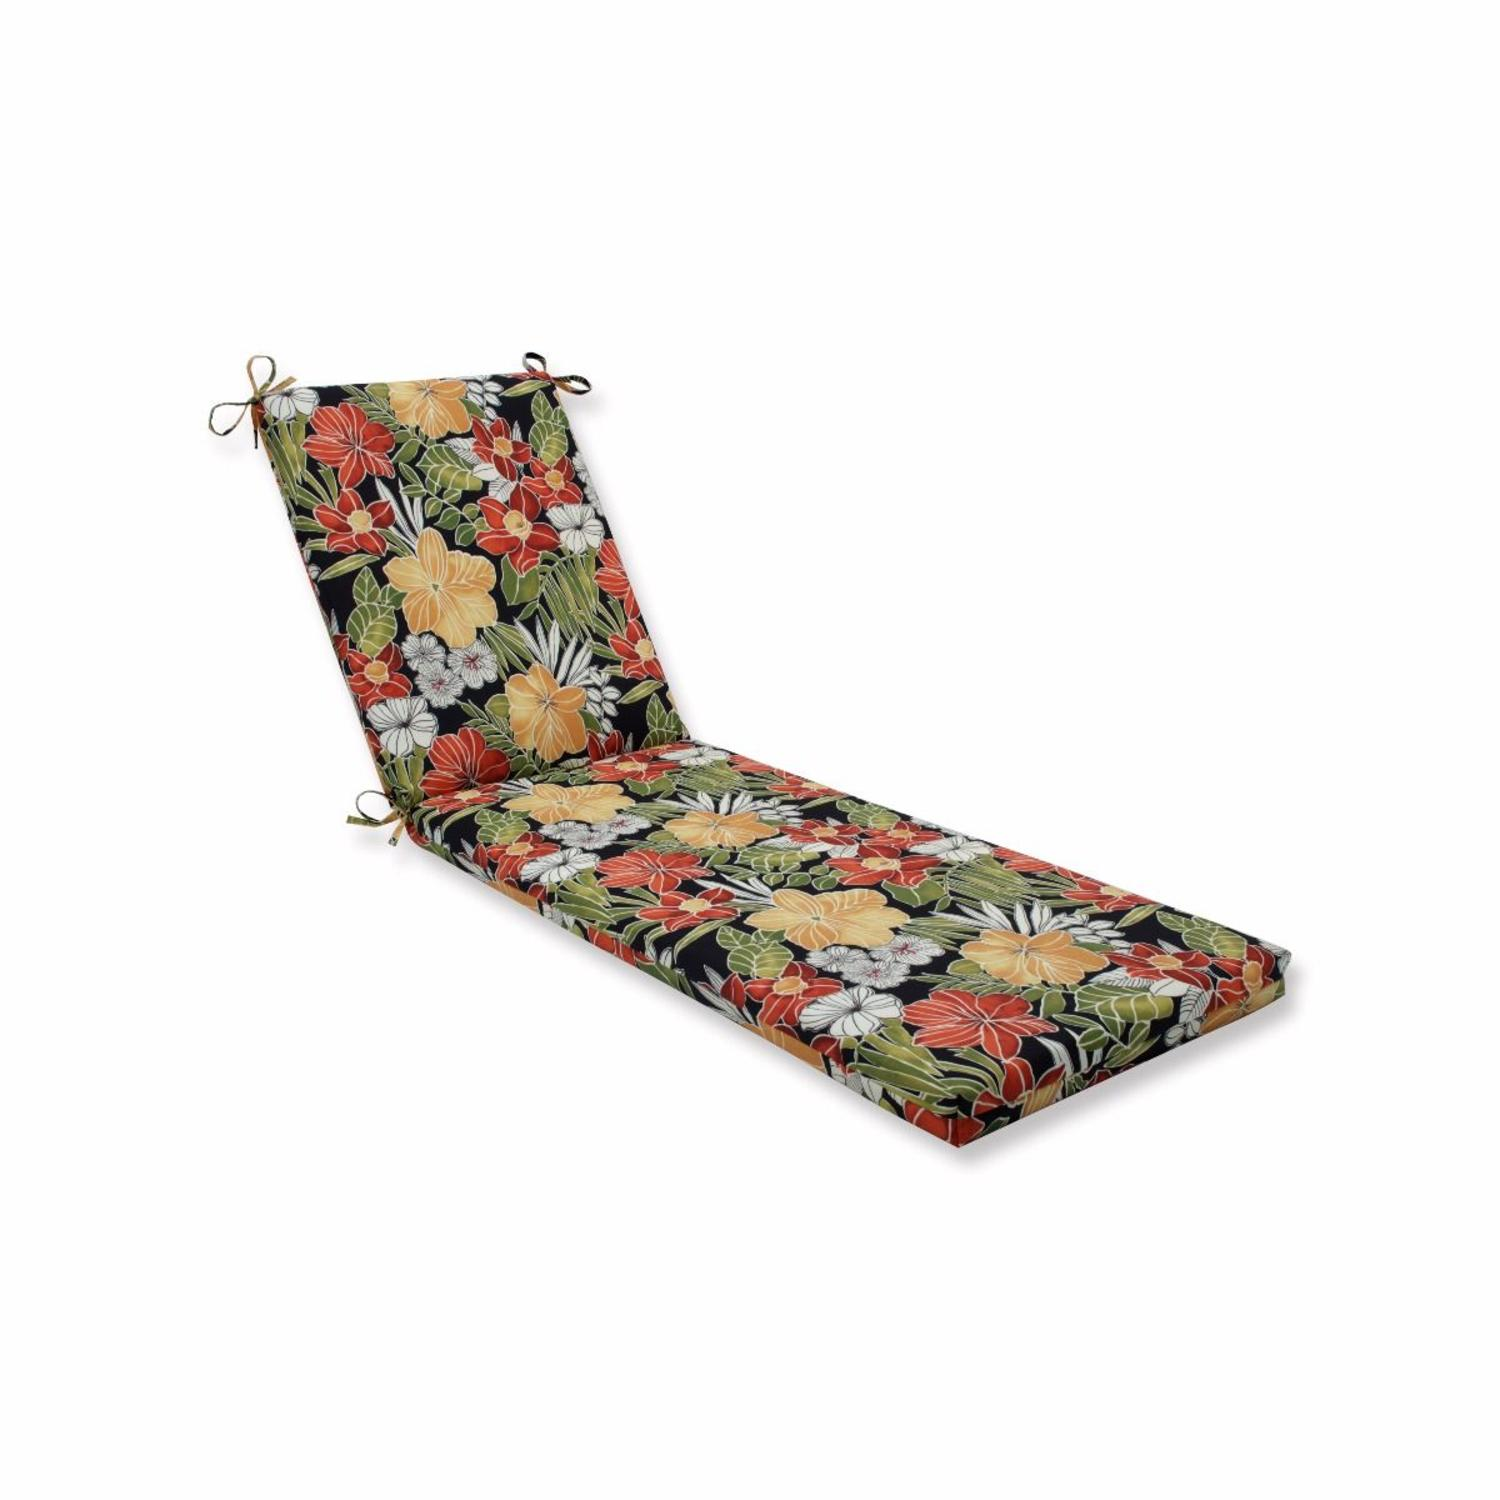 """80"""" Green Floral UV/Fade Resistant Outdoor Patio Lounge Cushion with Ties"""